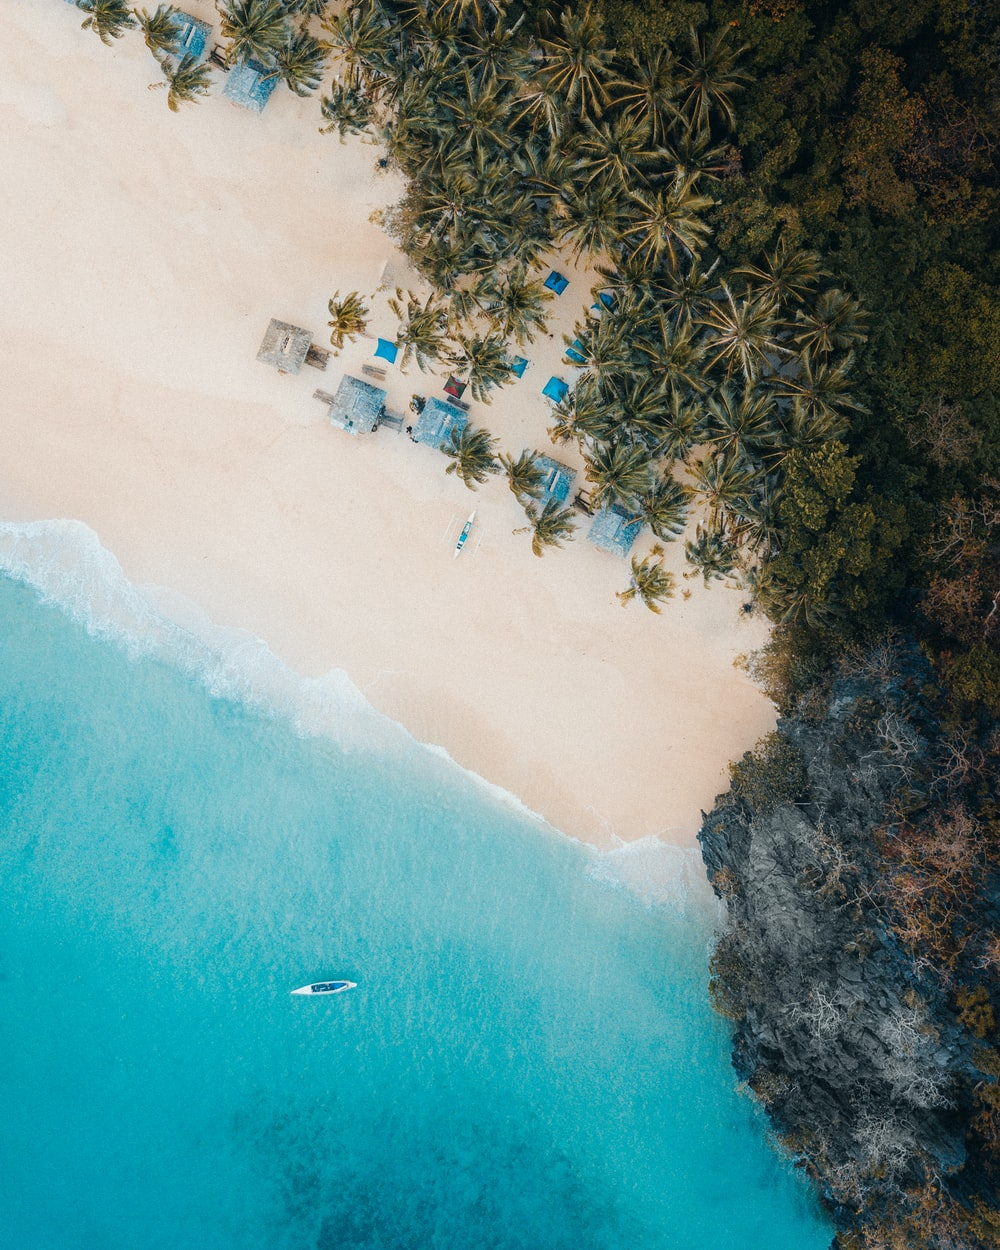 aerial view of palm trees